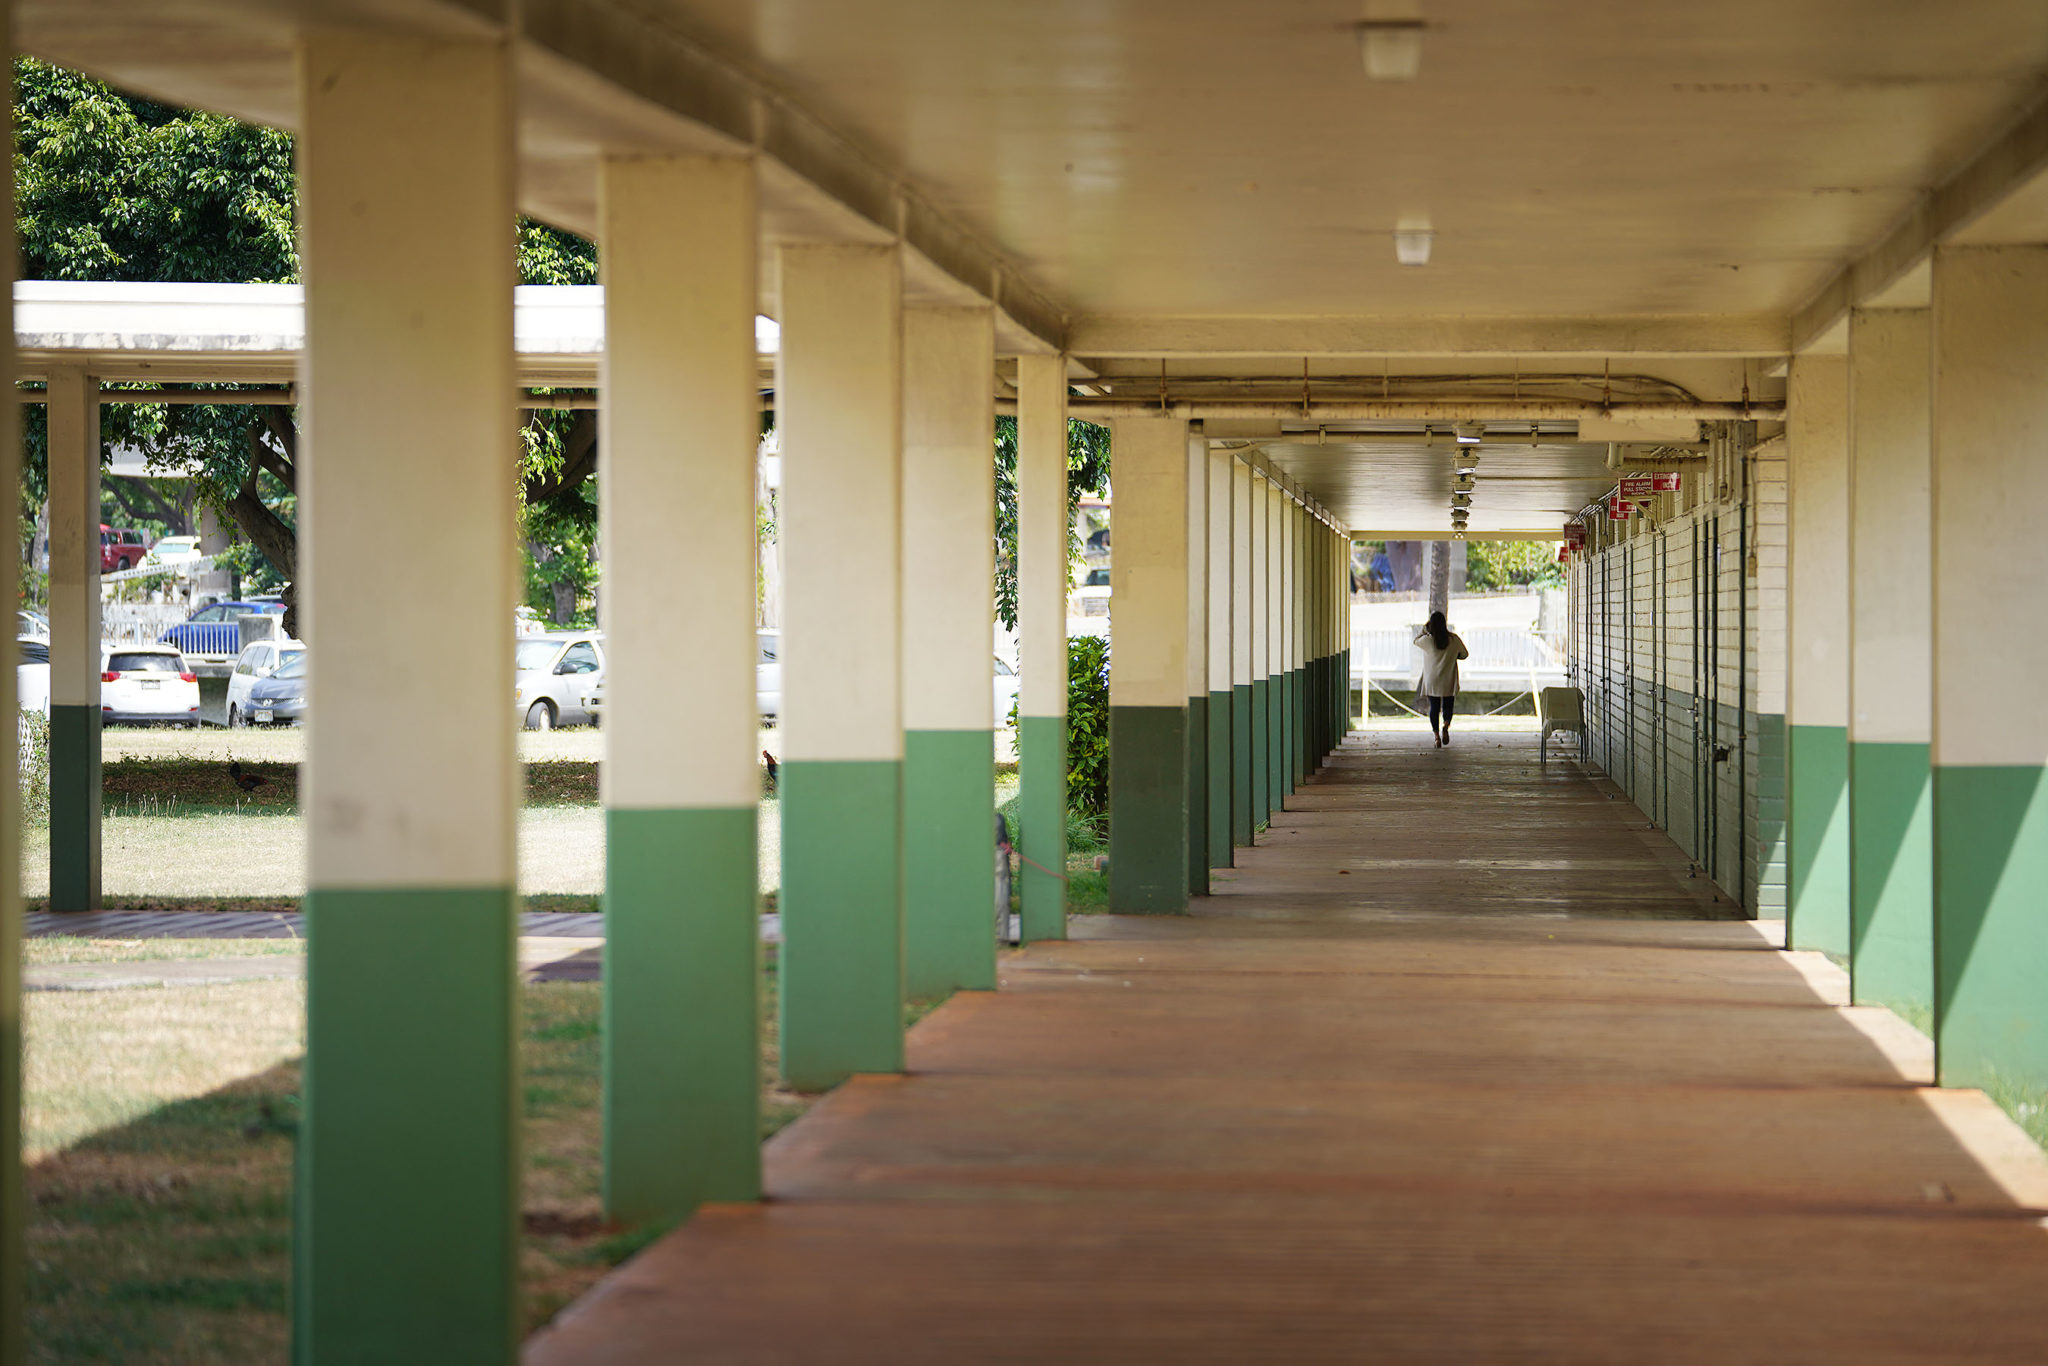 Kaimuki High School hallway.